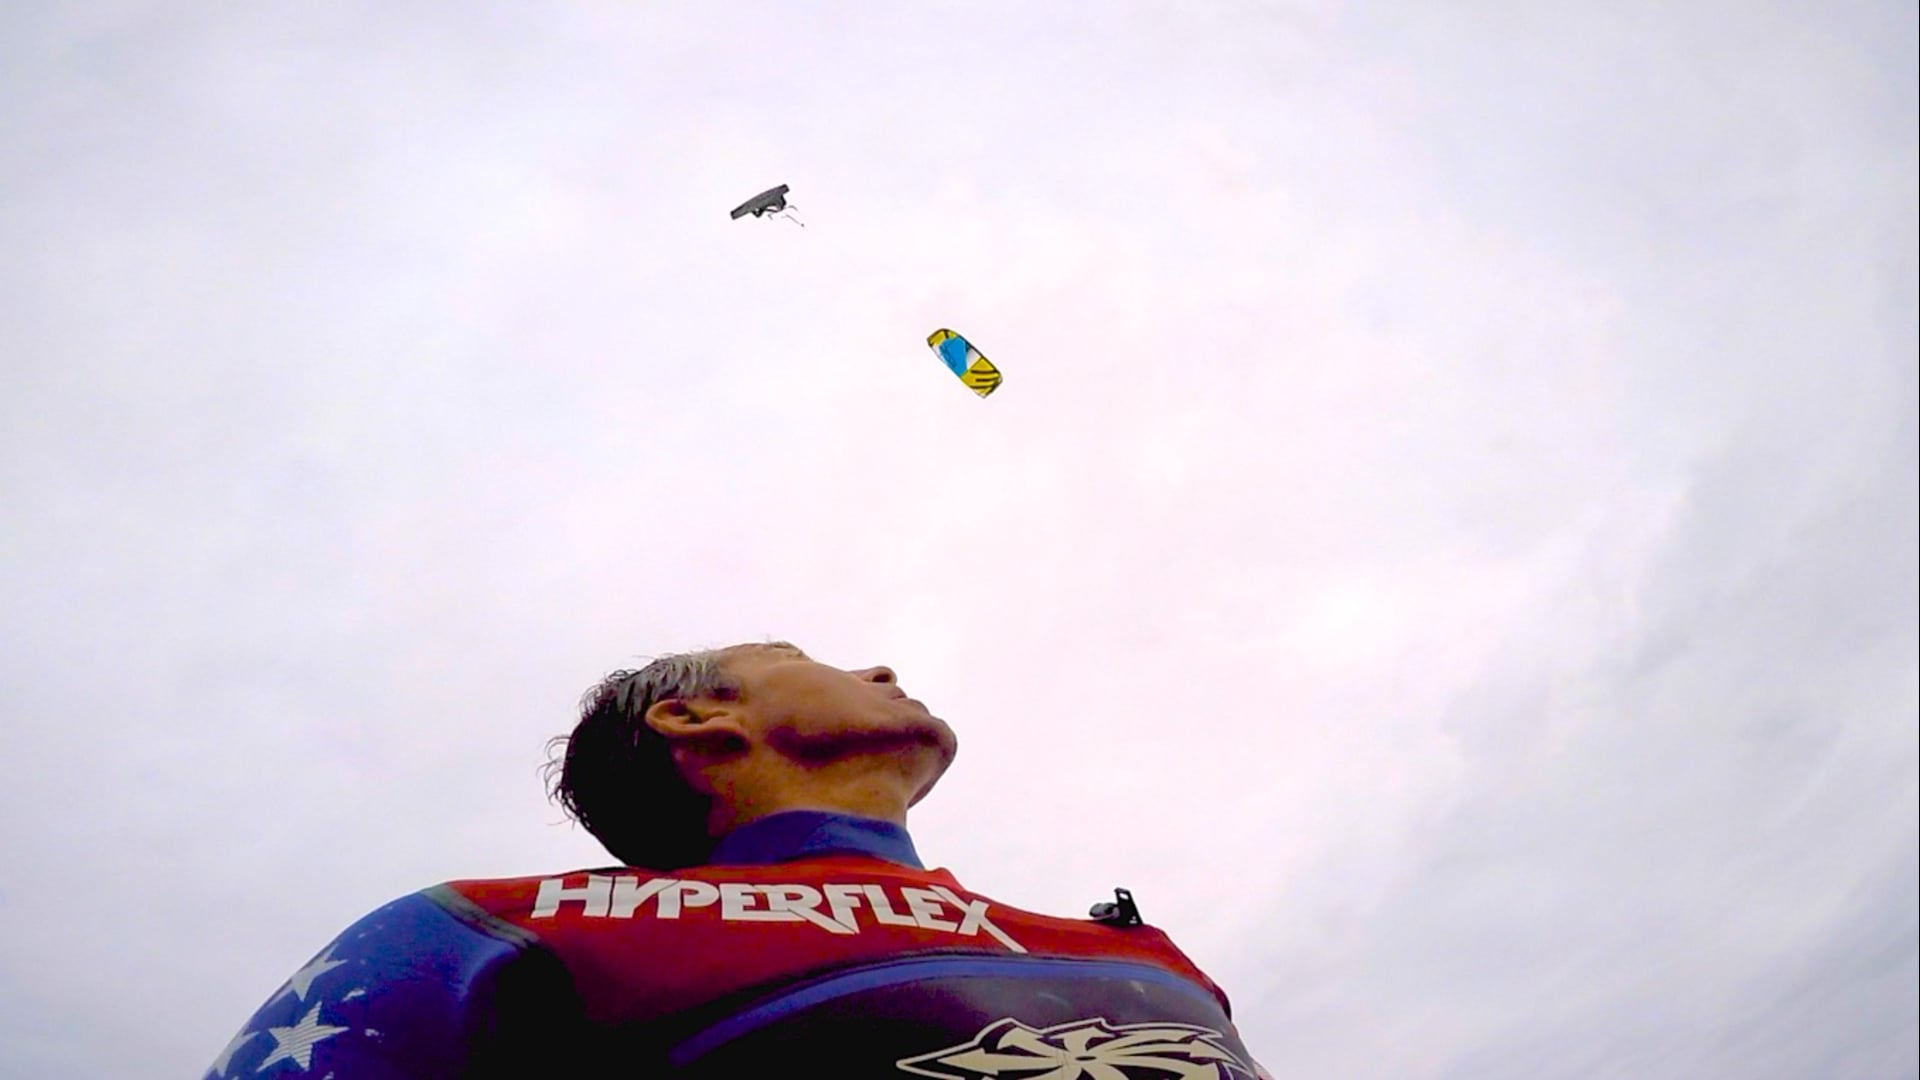 INSANE KITERS - with Epic Kites Kiteboarding